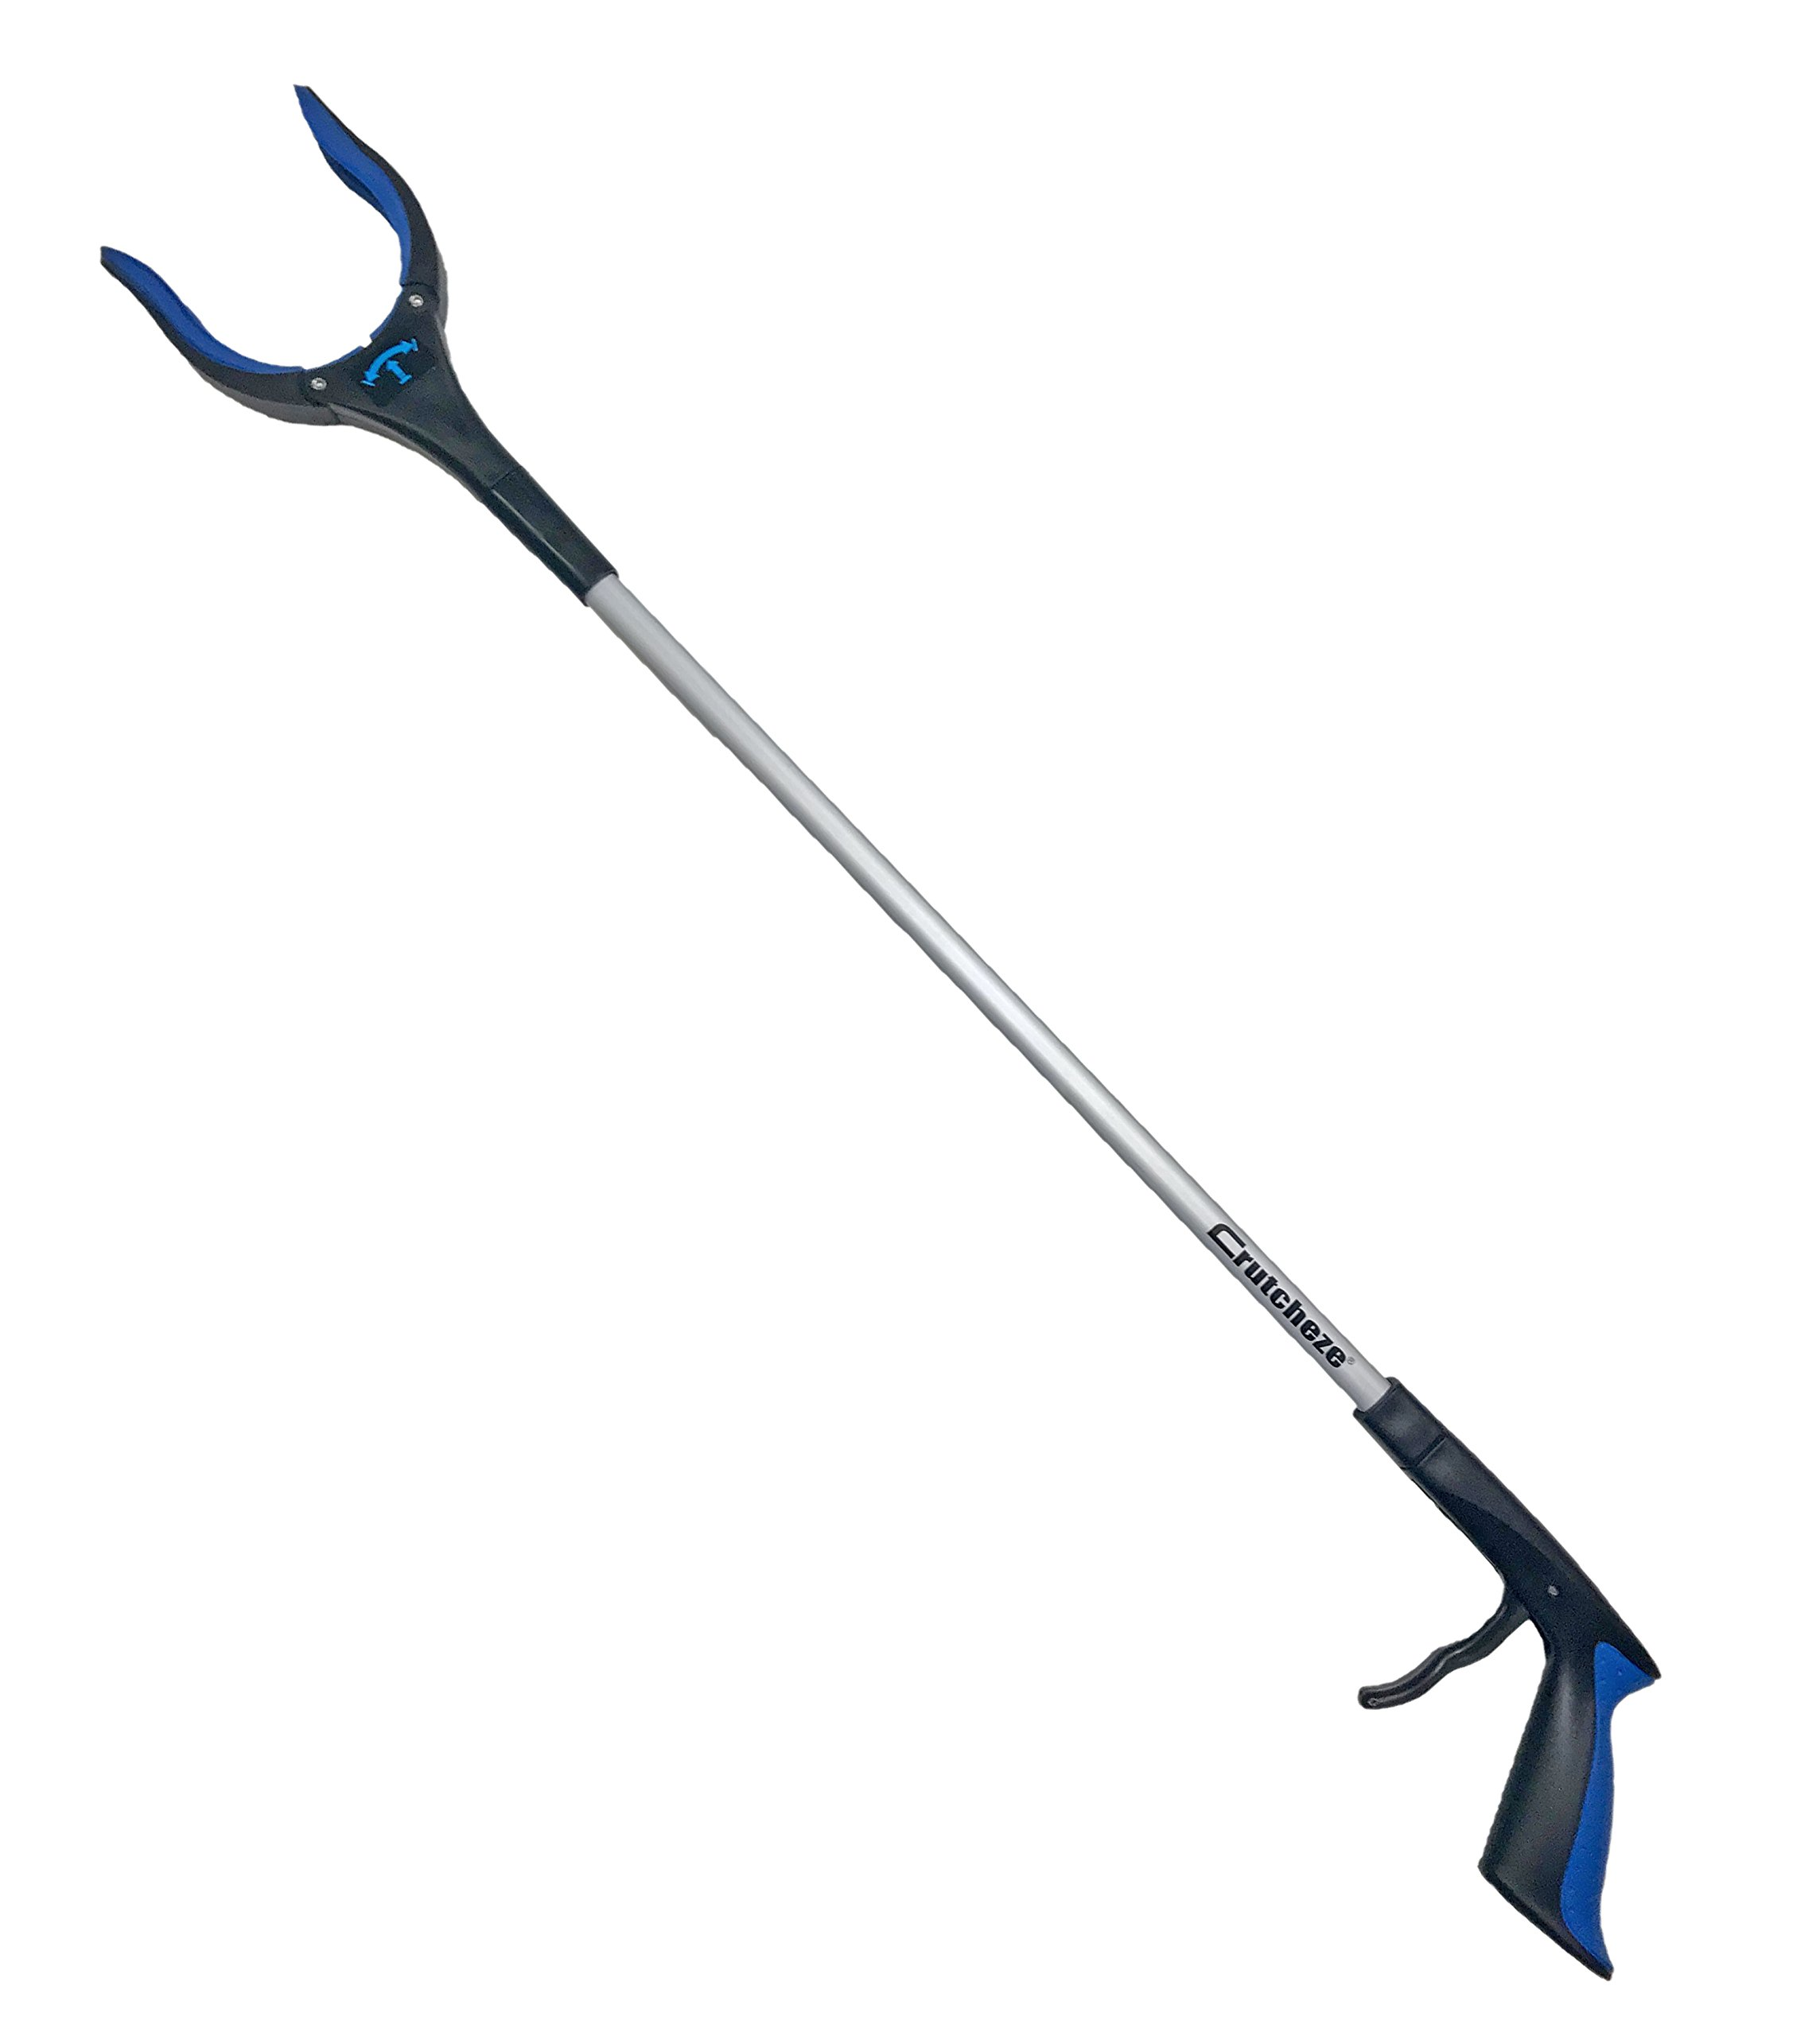 Crutcheze Reacher Grabber Mobility Aid - 32'' Reach Assist for Everyday Items - Trash Picker with Rotating Grip (Blue)